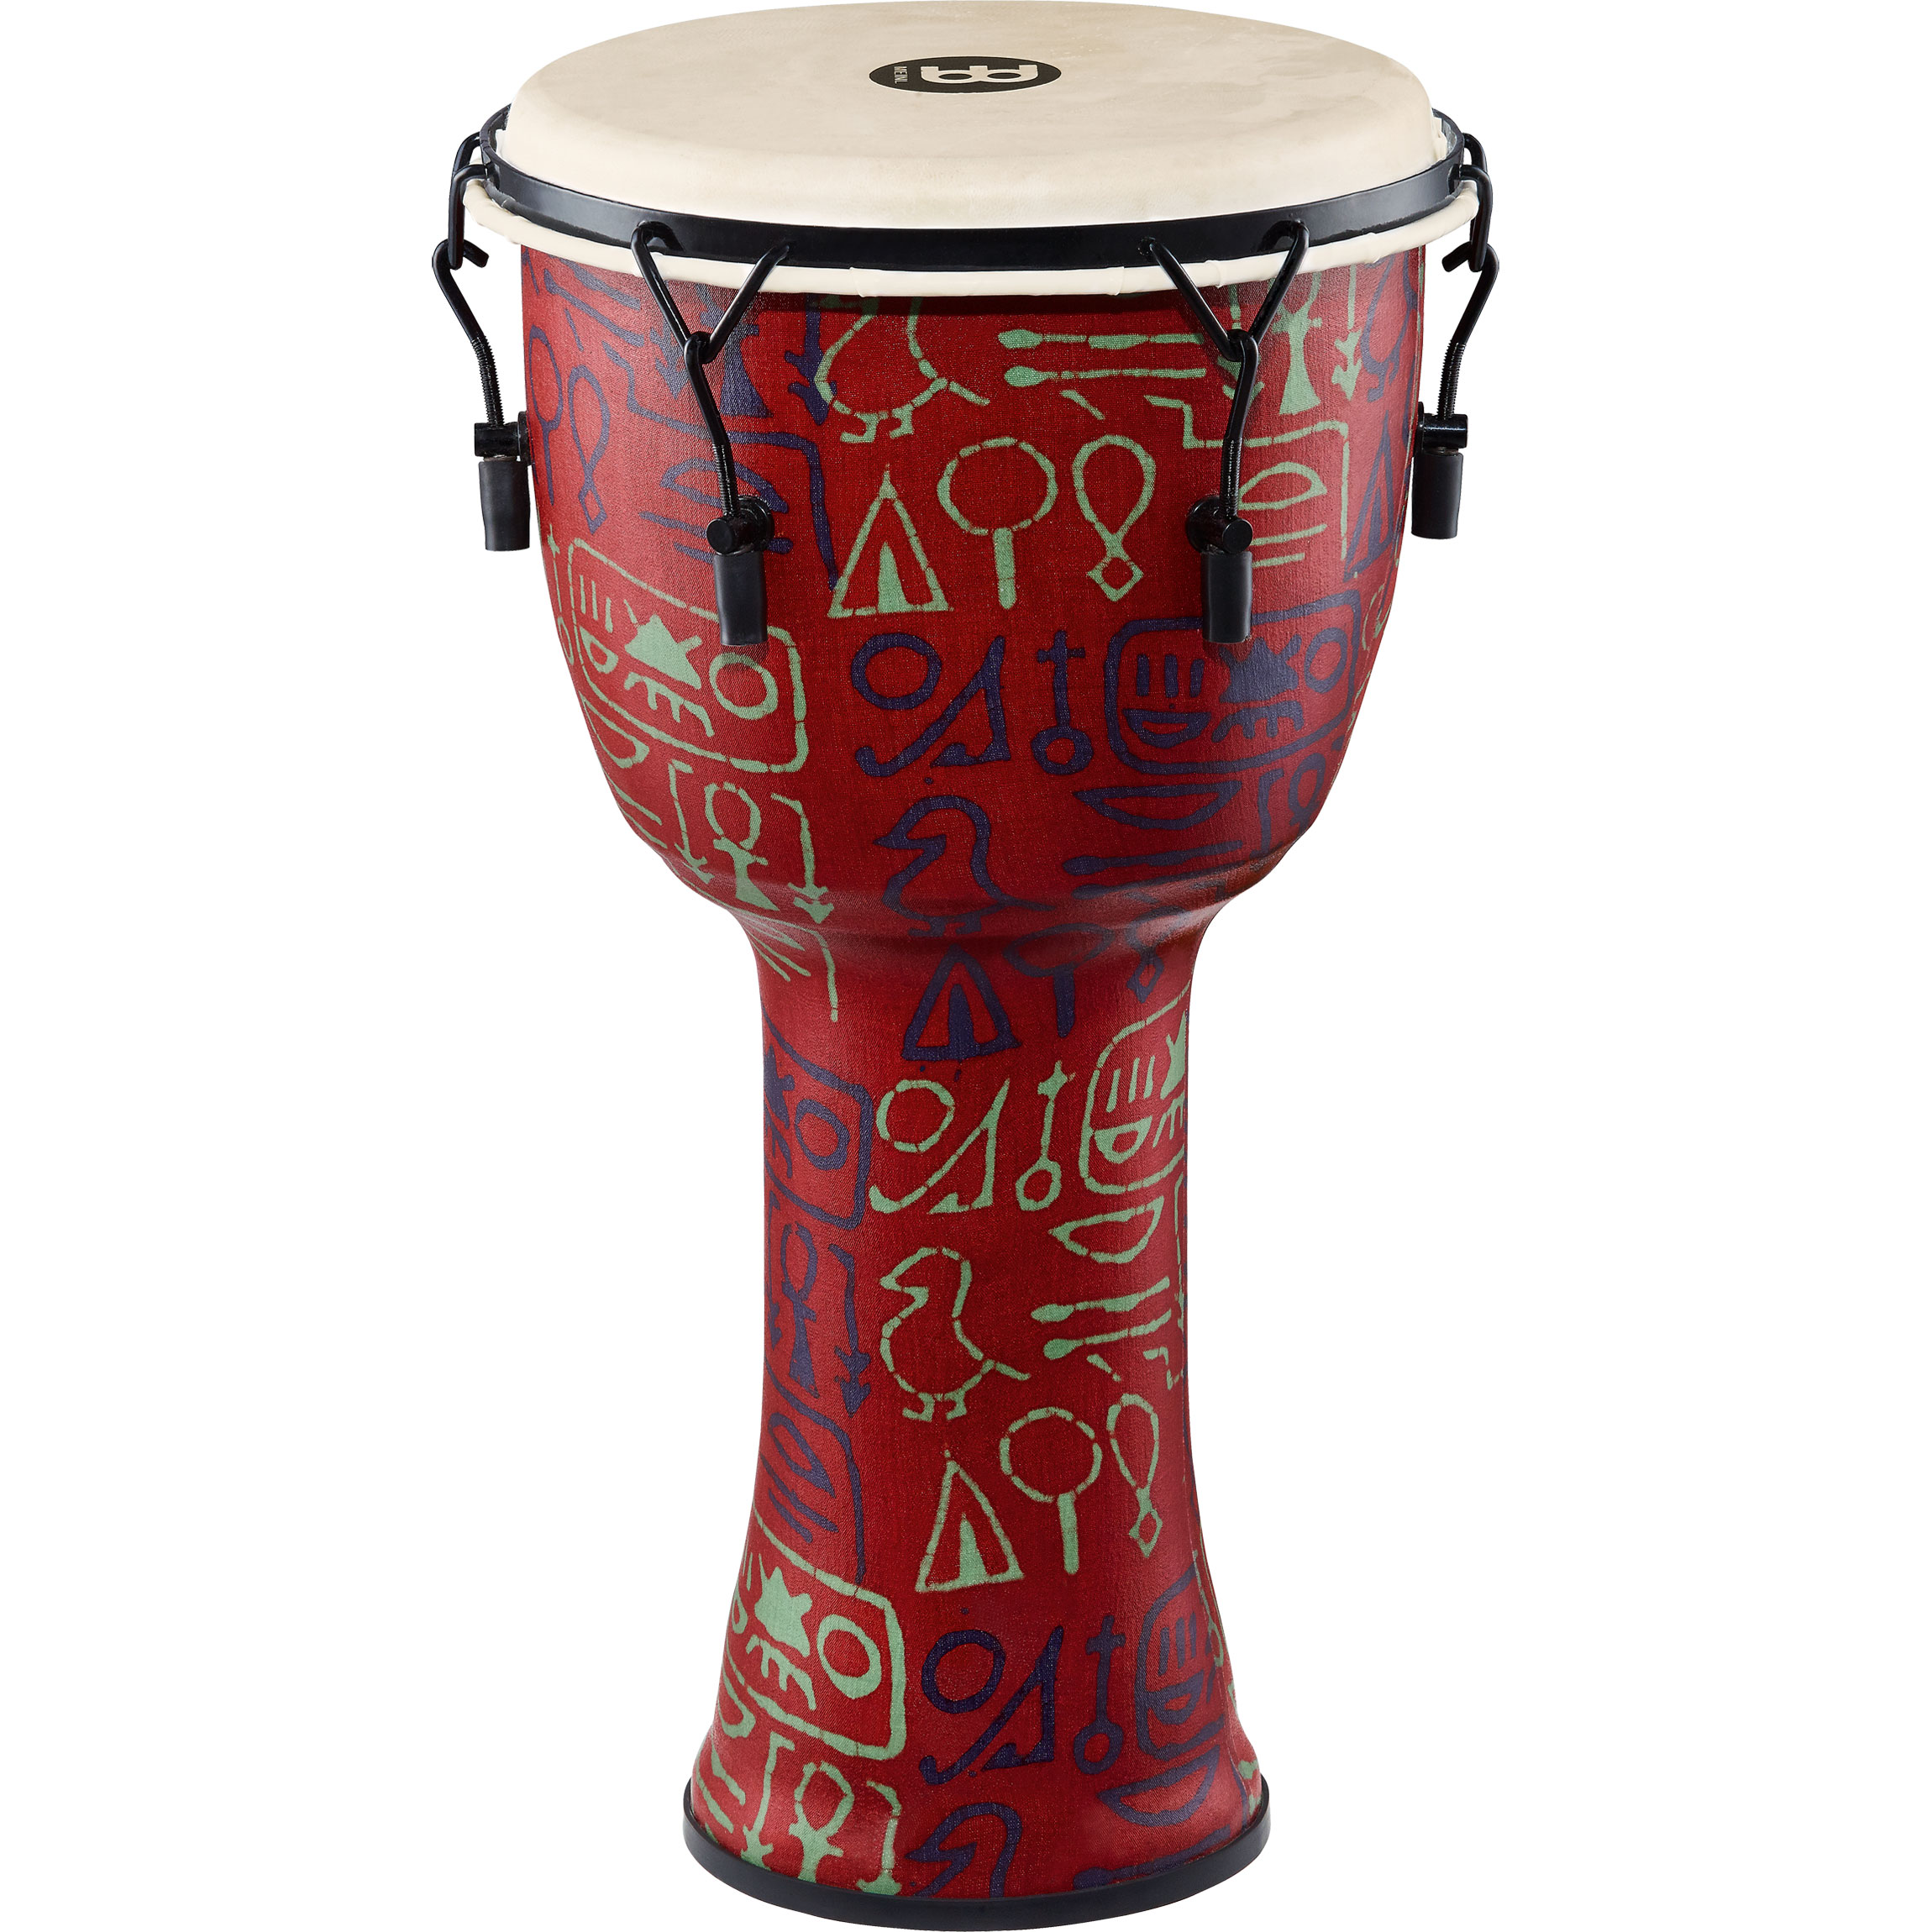 "Meinl 12"" Mechanically-Tuned Travel Djembe in Pharaoh"